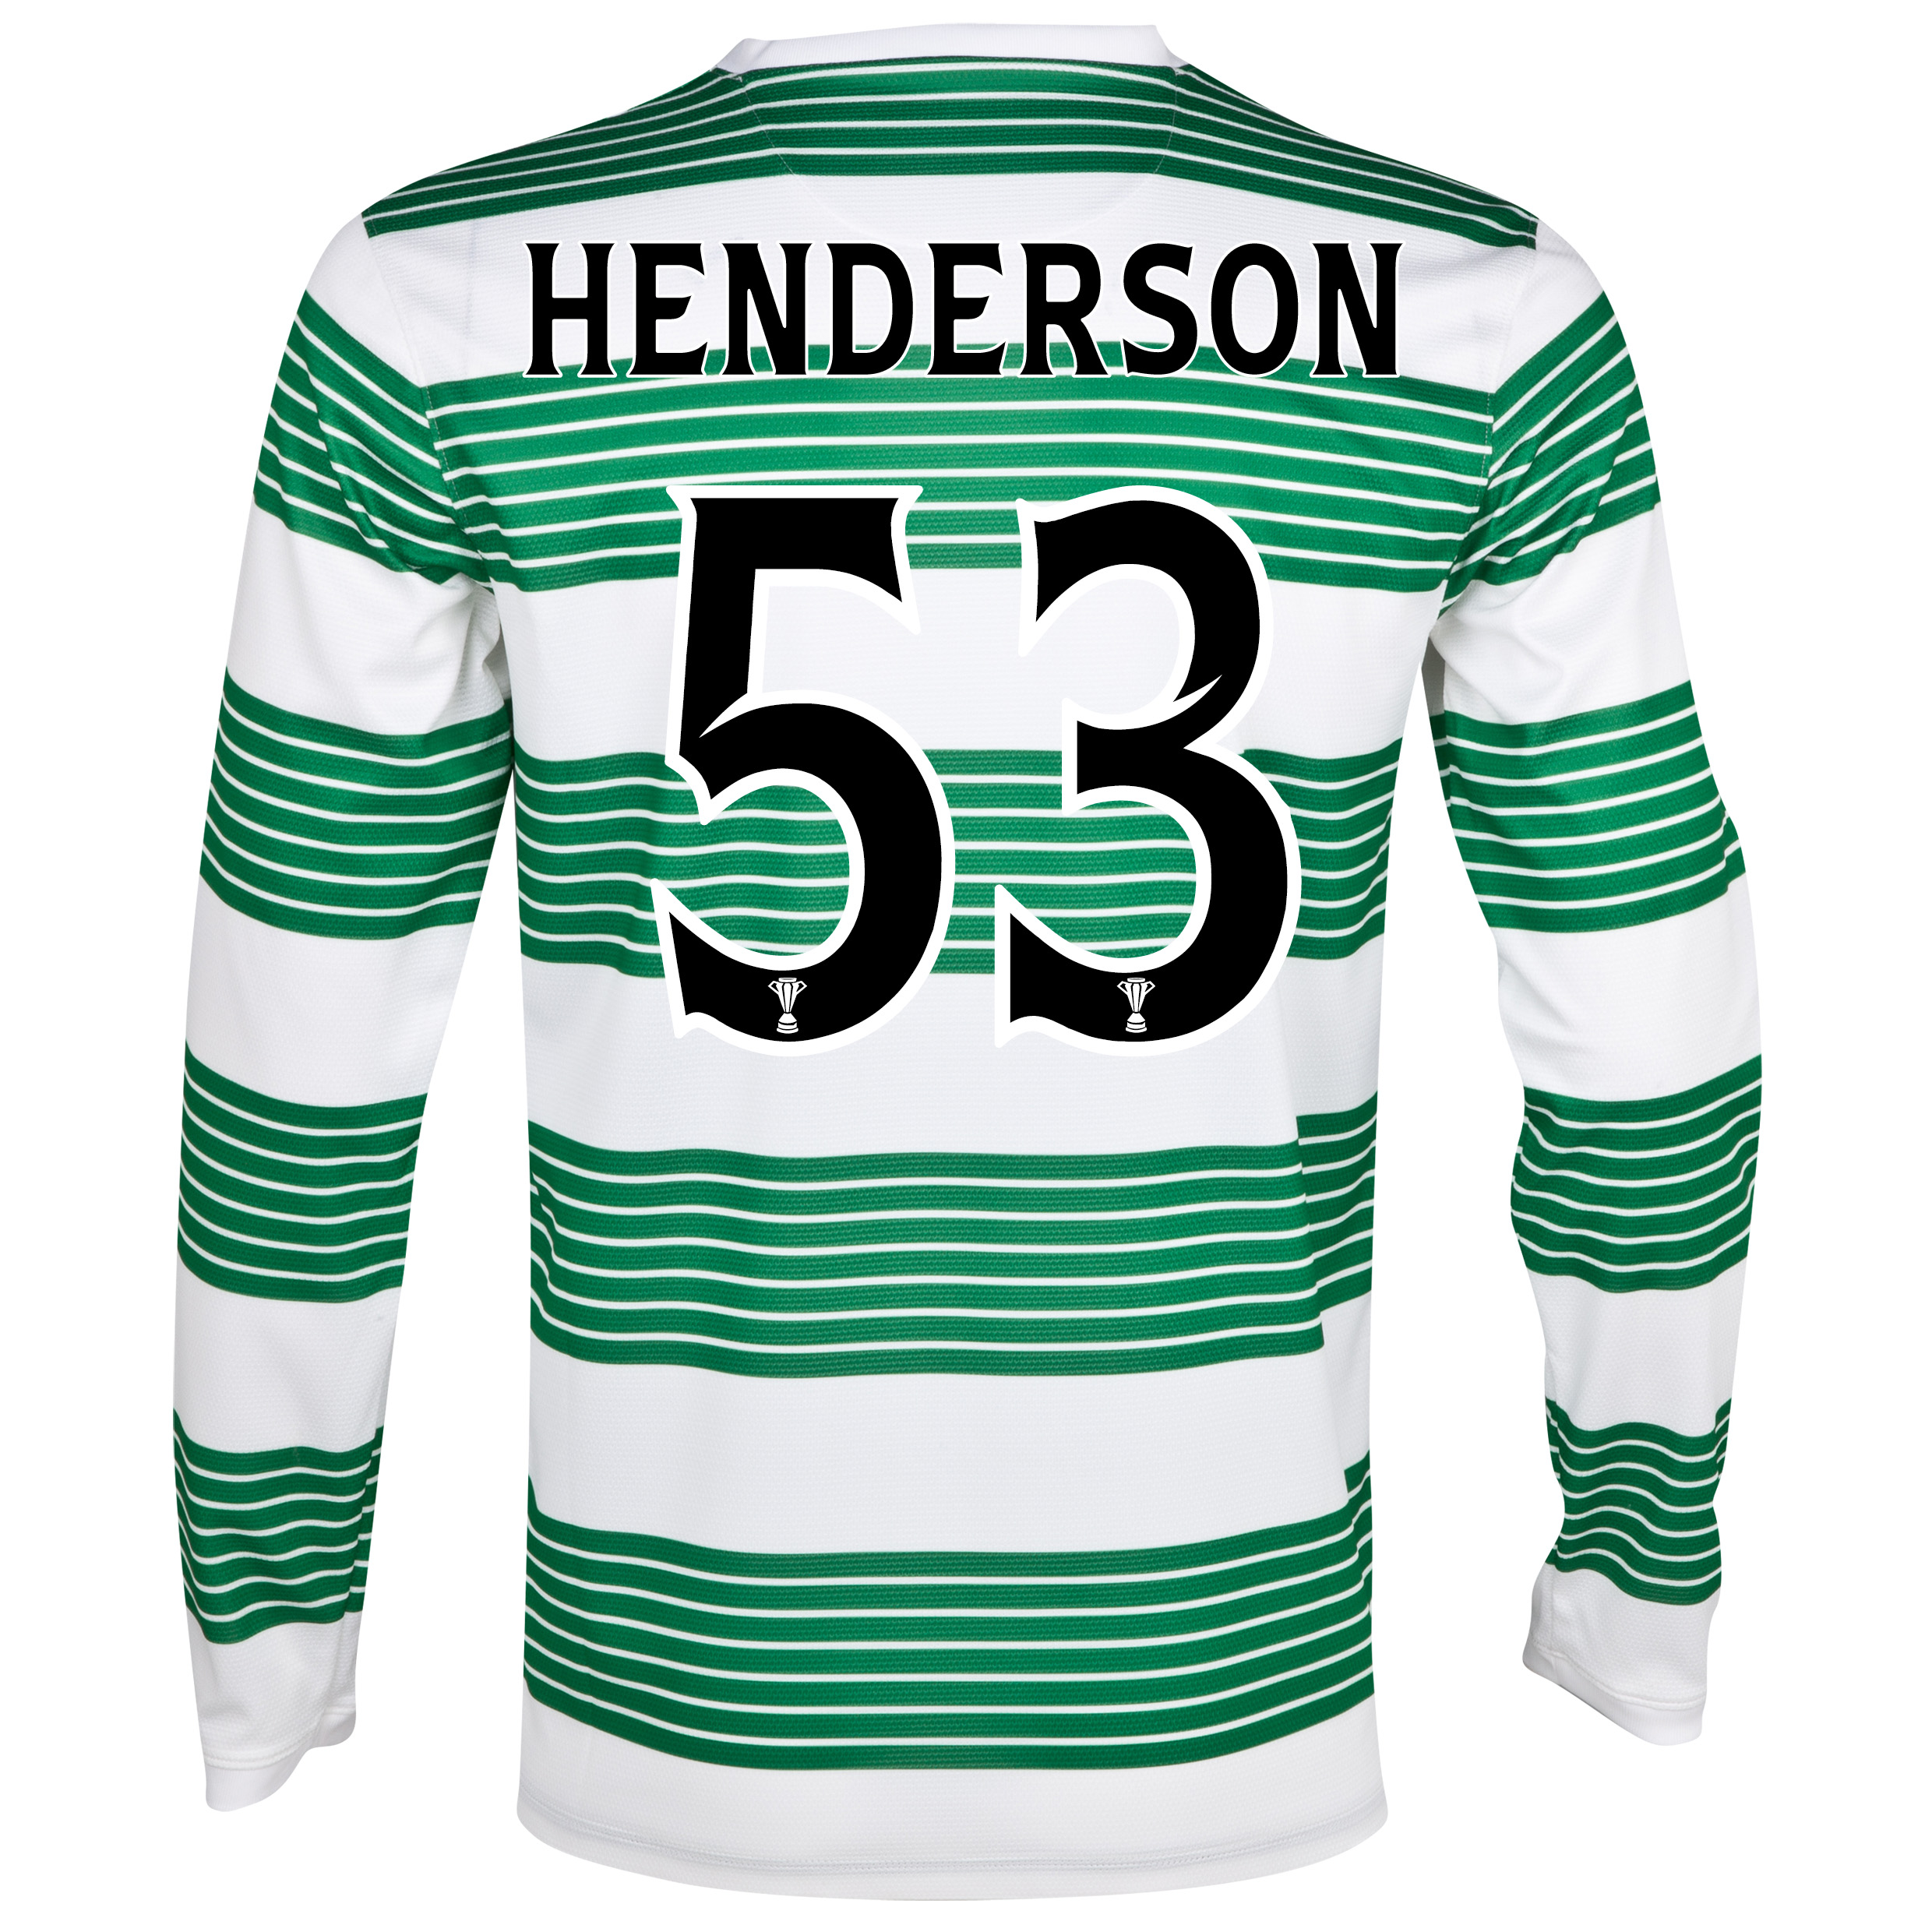 Celtic Home Shirt 2013/15 - Long Sleeved - Kids with Henderson 53 printing